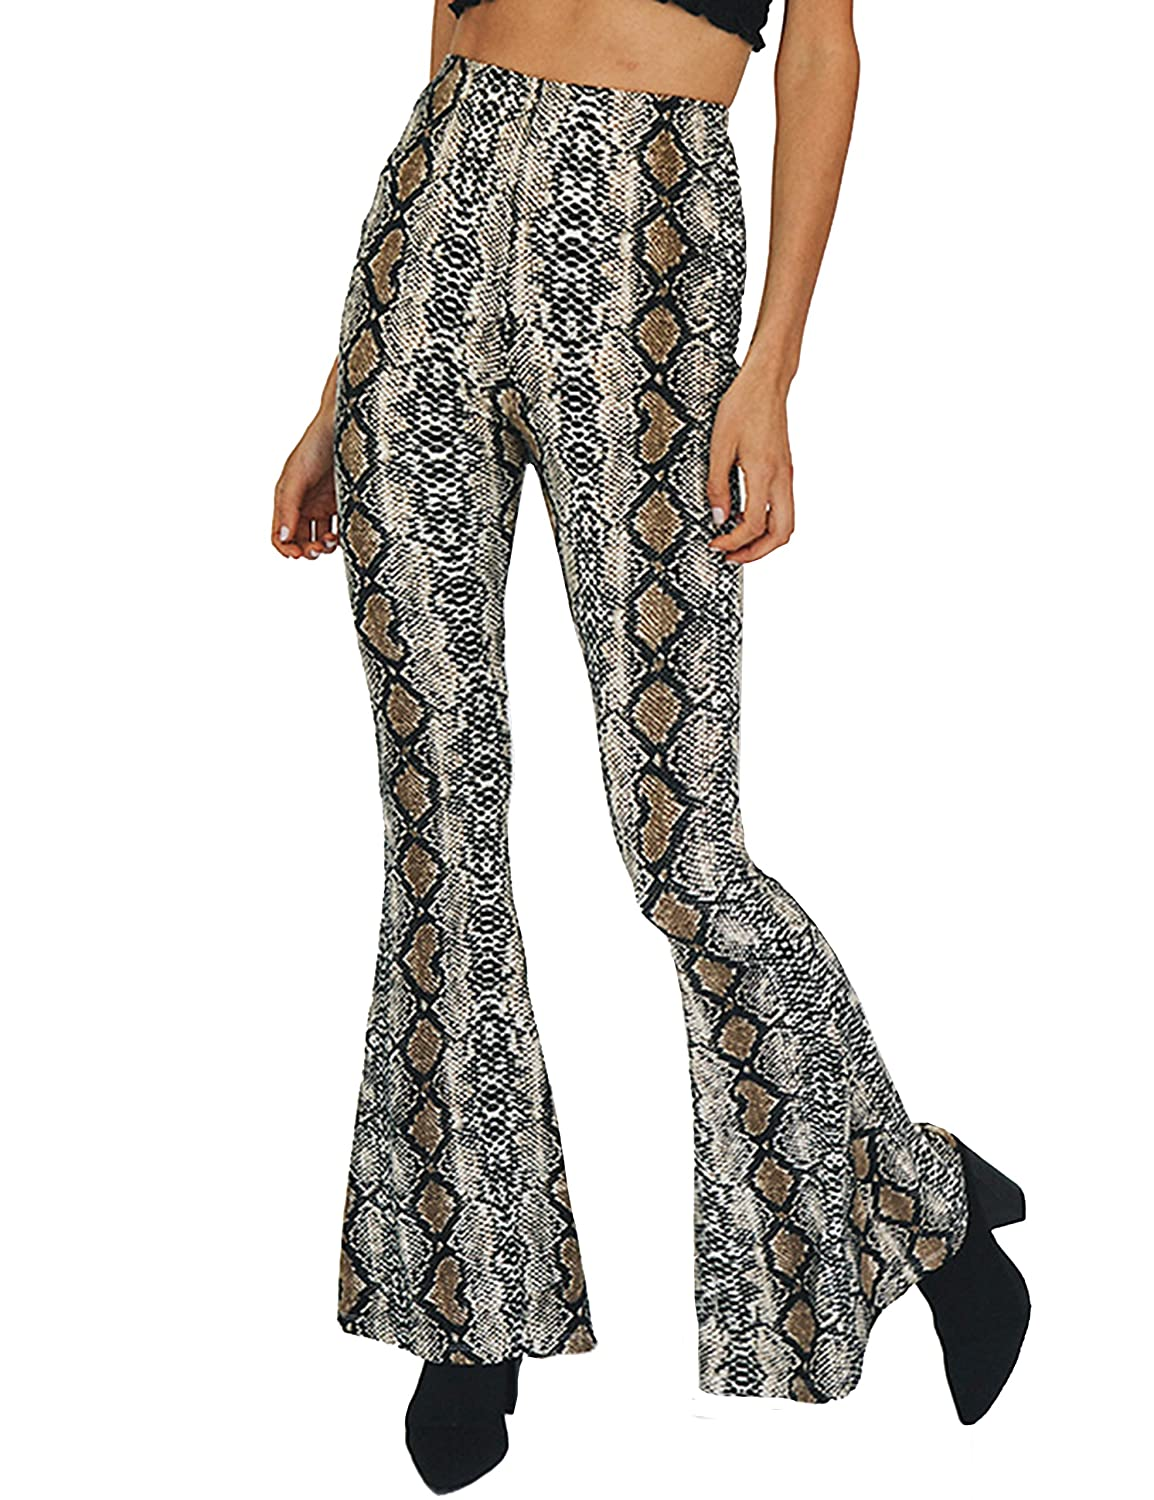 Amazon.com: LAUWEE Womens Stylish Snakeskin Print Bell Bottom Pants Slim Fit High Waist Pants: Clothing